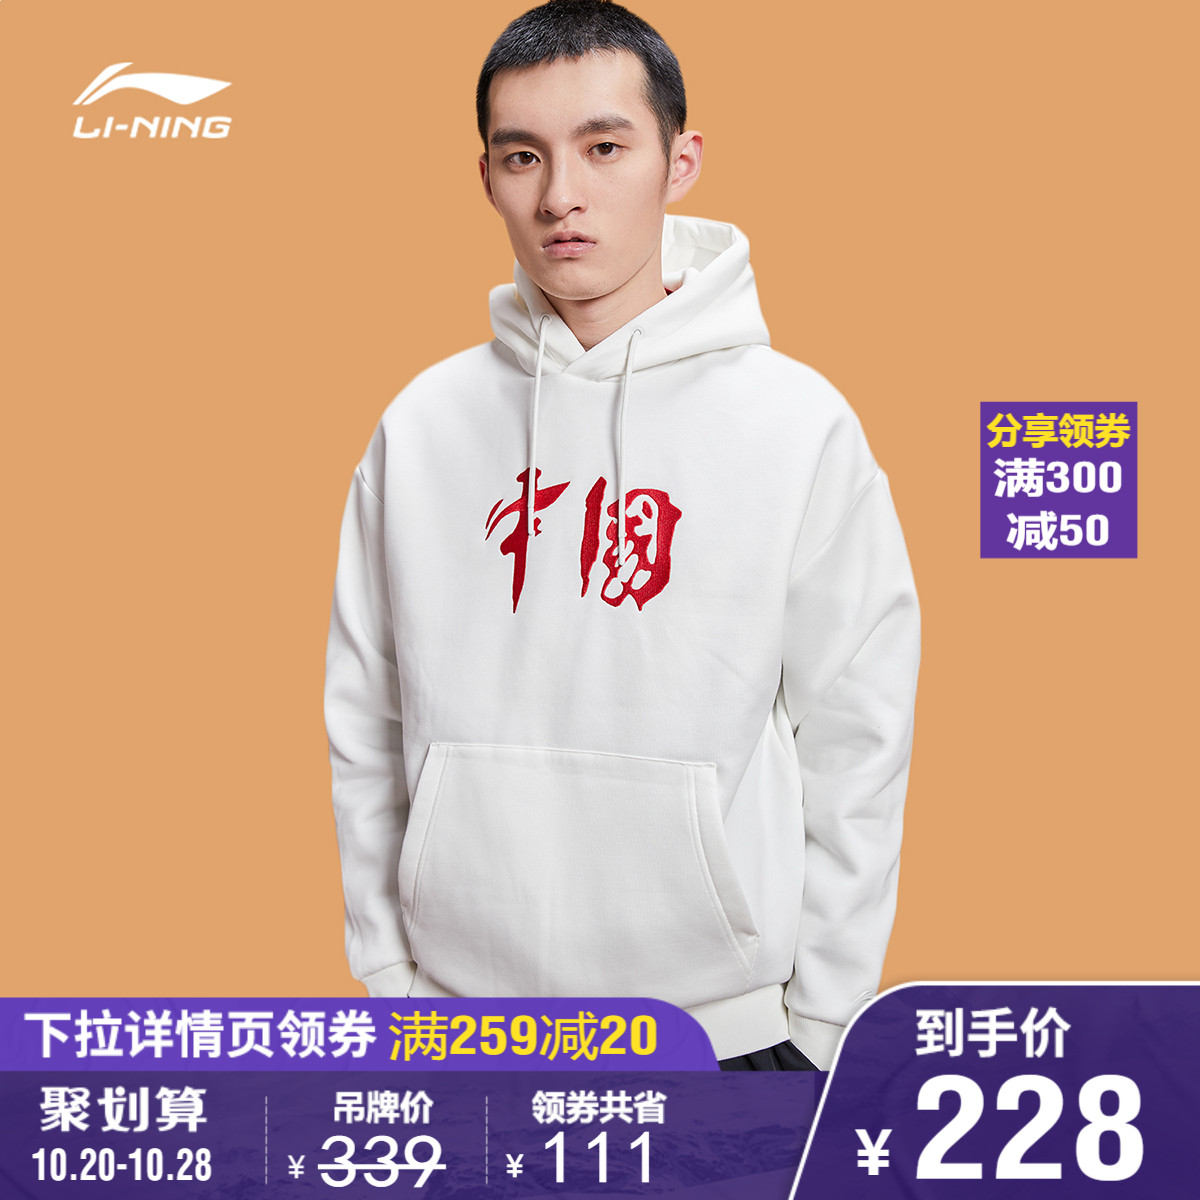 Li Ning sports sweater men and women the same new long-sleeved hooded autumn plus velvet thick casual jacket sportswear